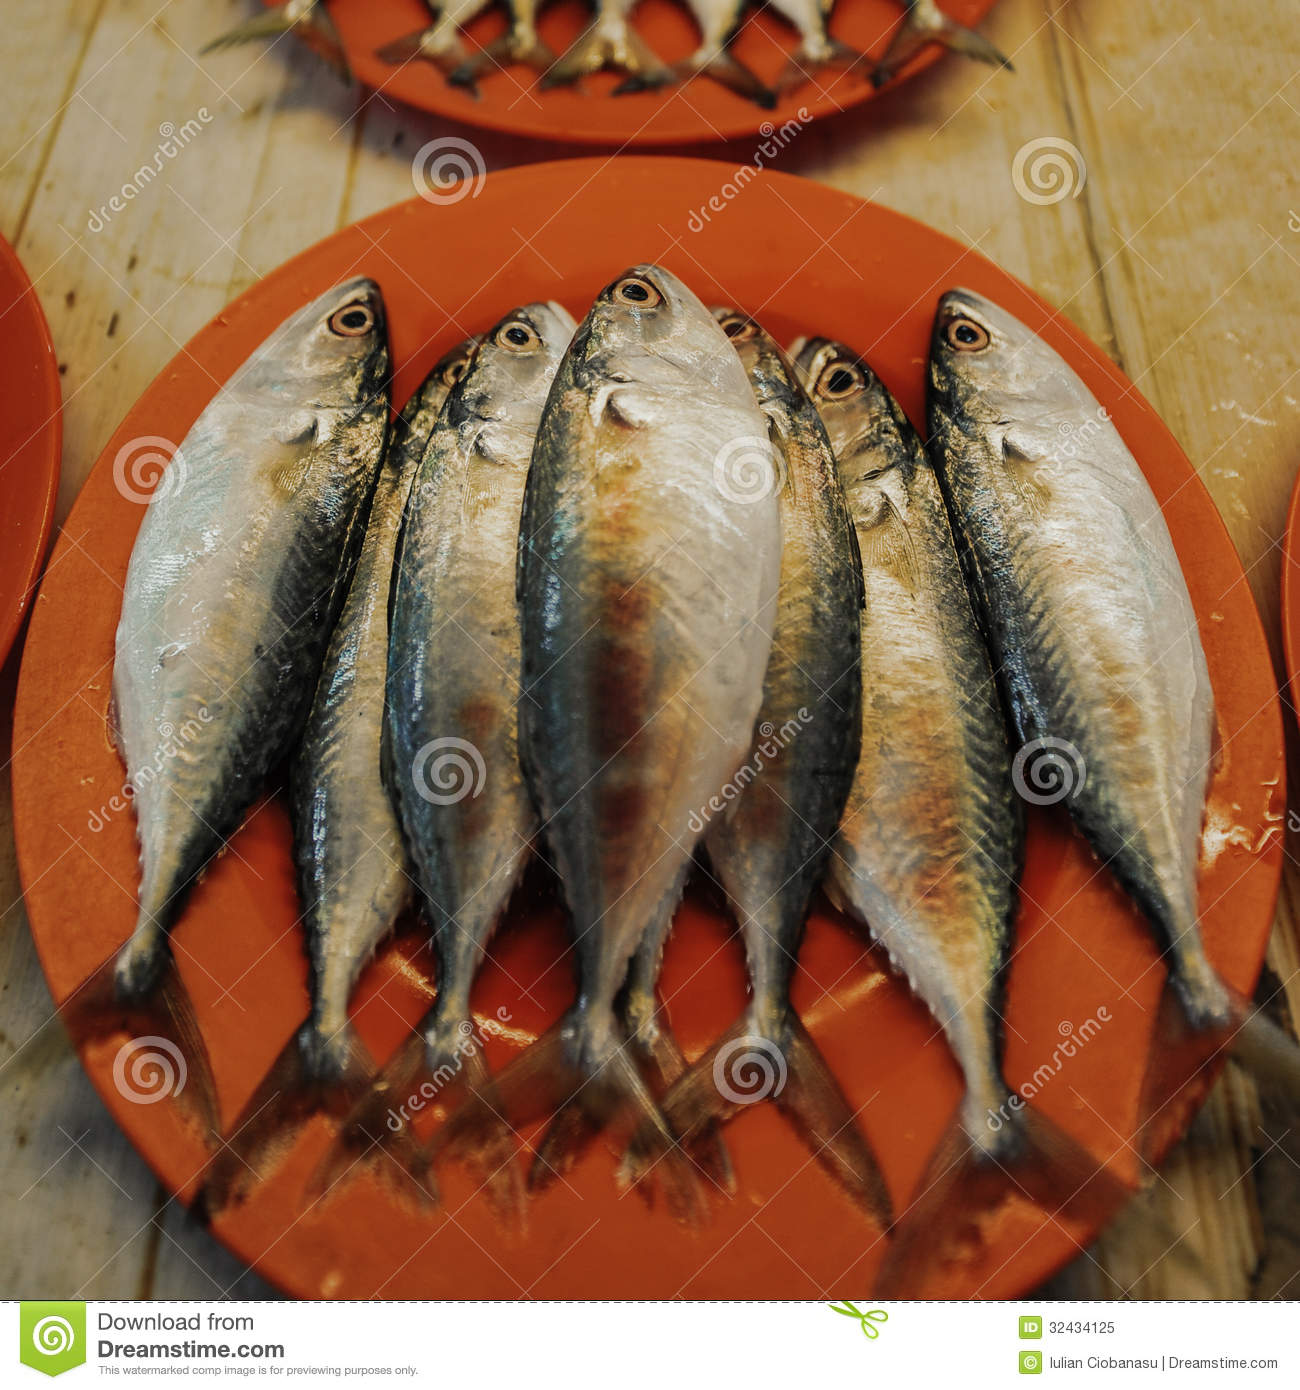 Fish royalty free stock photo image 32434125 for Is a fish wet